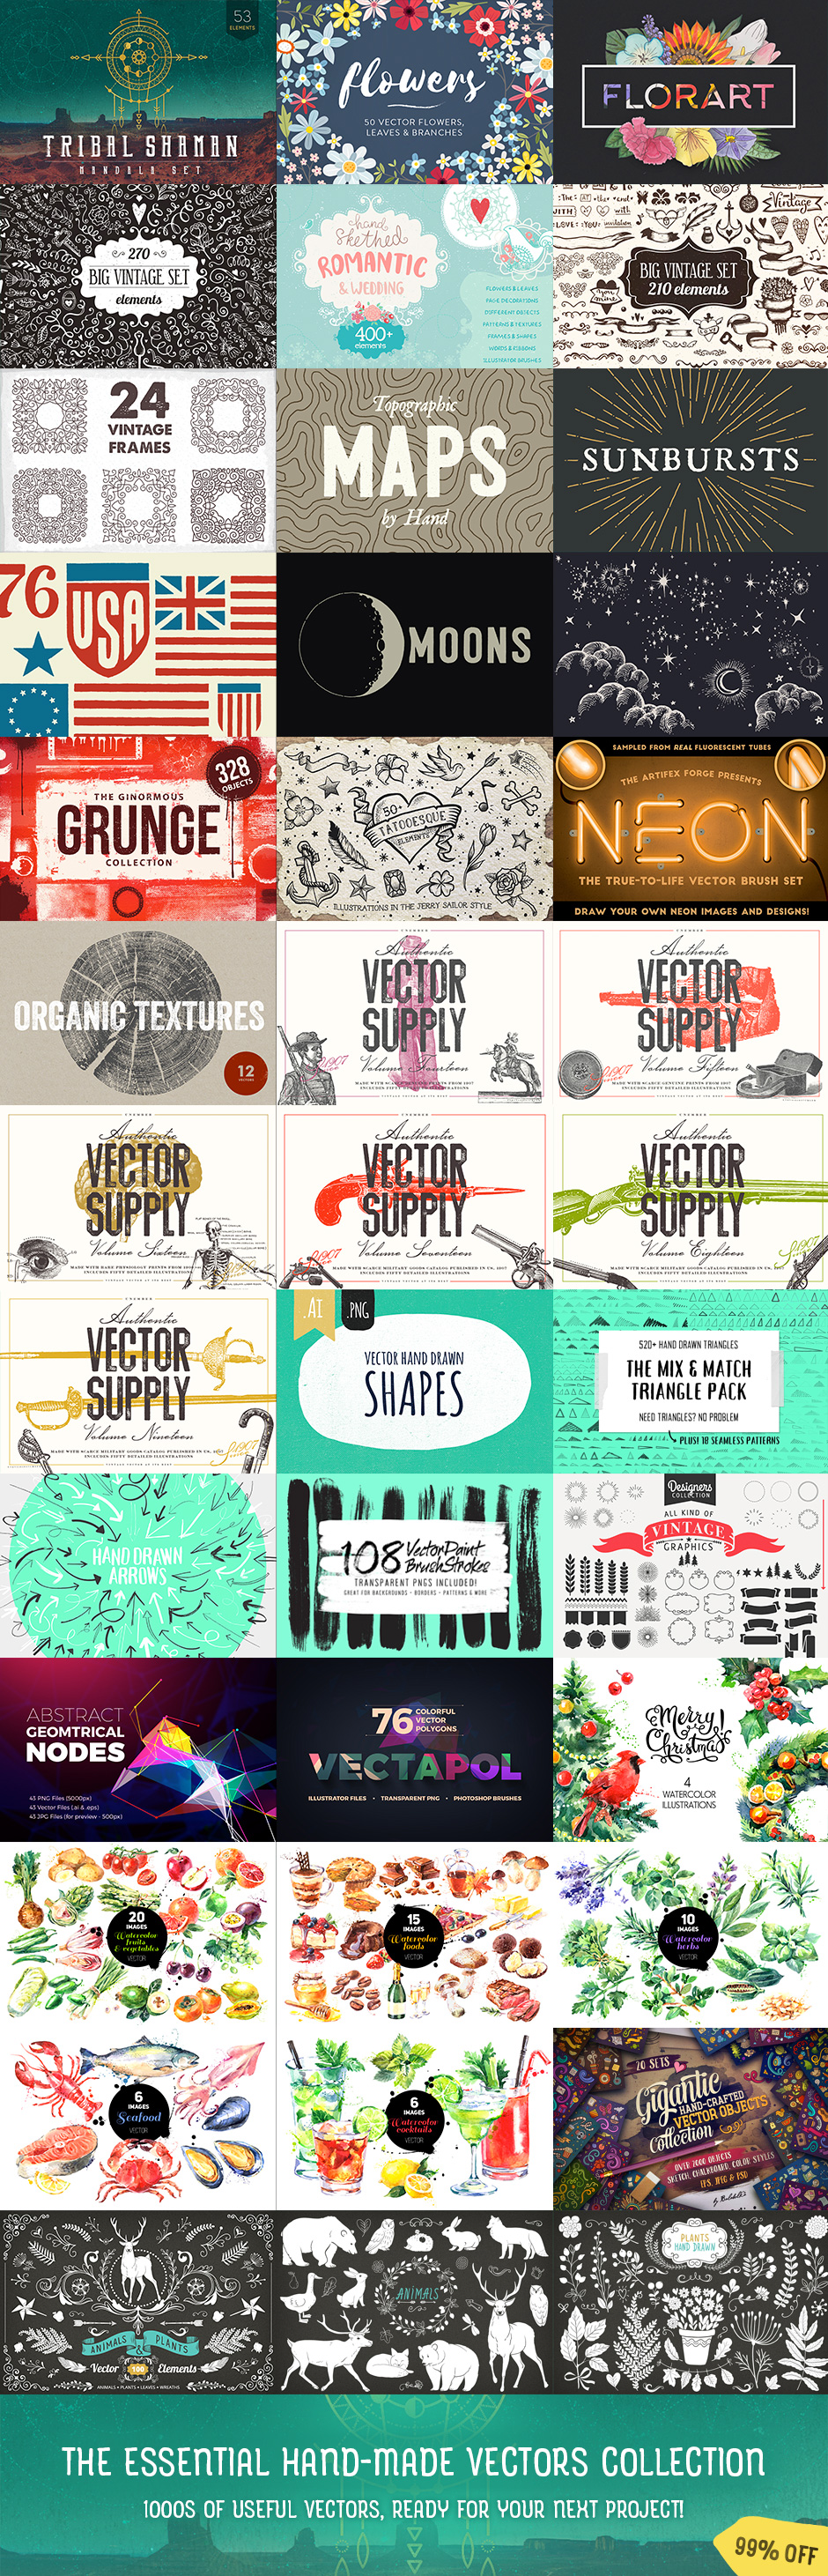 The Essential Hand Made Vectors Collection